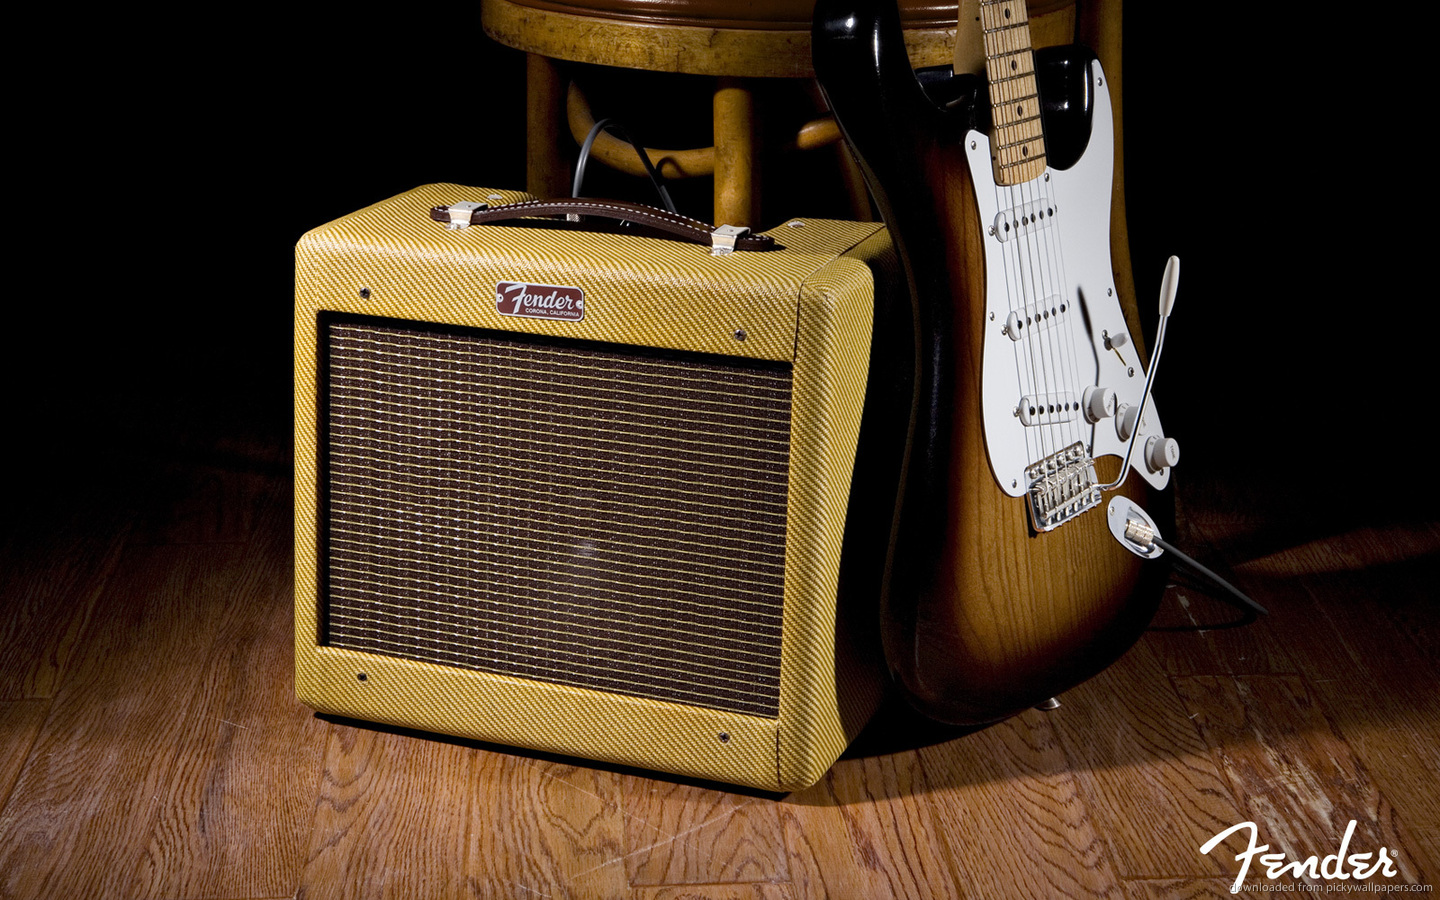 Download 1440x900 Old Fender Amp And Electric Guitar Wallpaper 1440x900